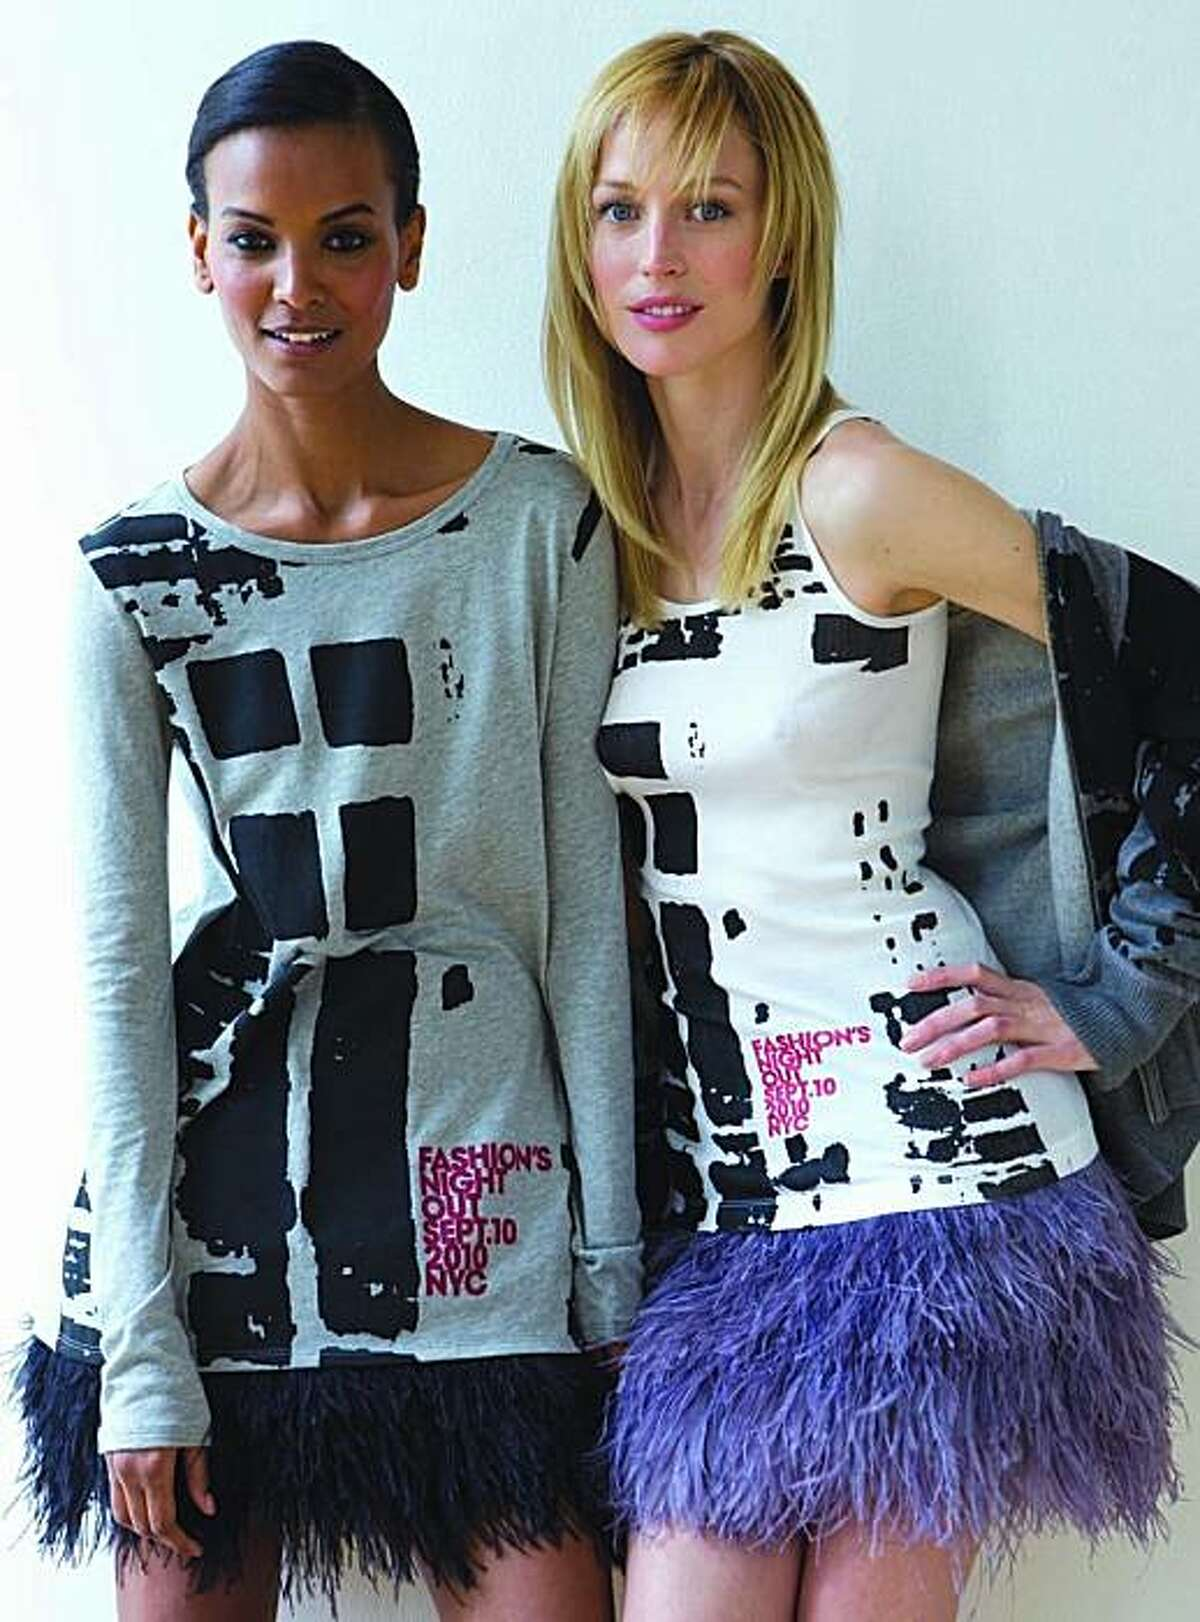 Models Liya Kebede and Raquel Zimmermann show the official Fashion's Night Out collection. Forty percent of the proceeds raised from the sales of these shirts will go to the NYC AIDS fund.